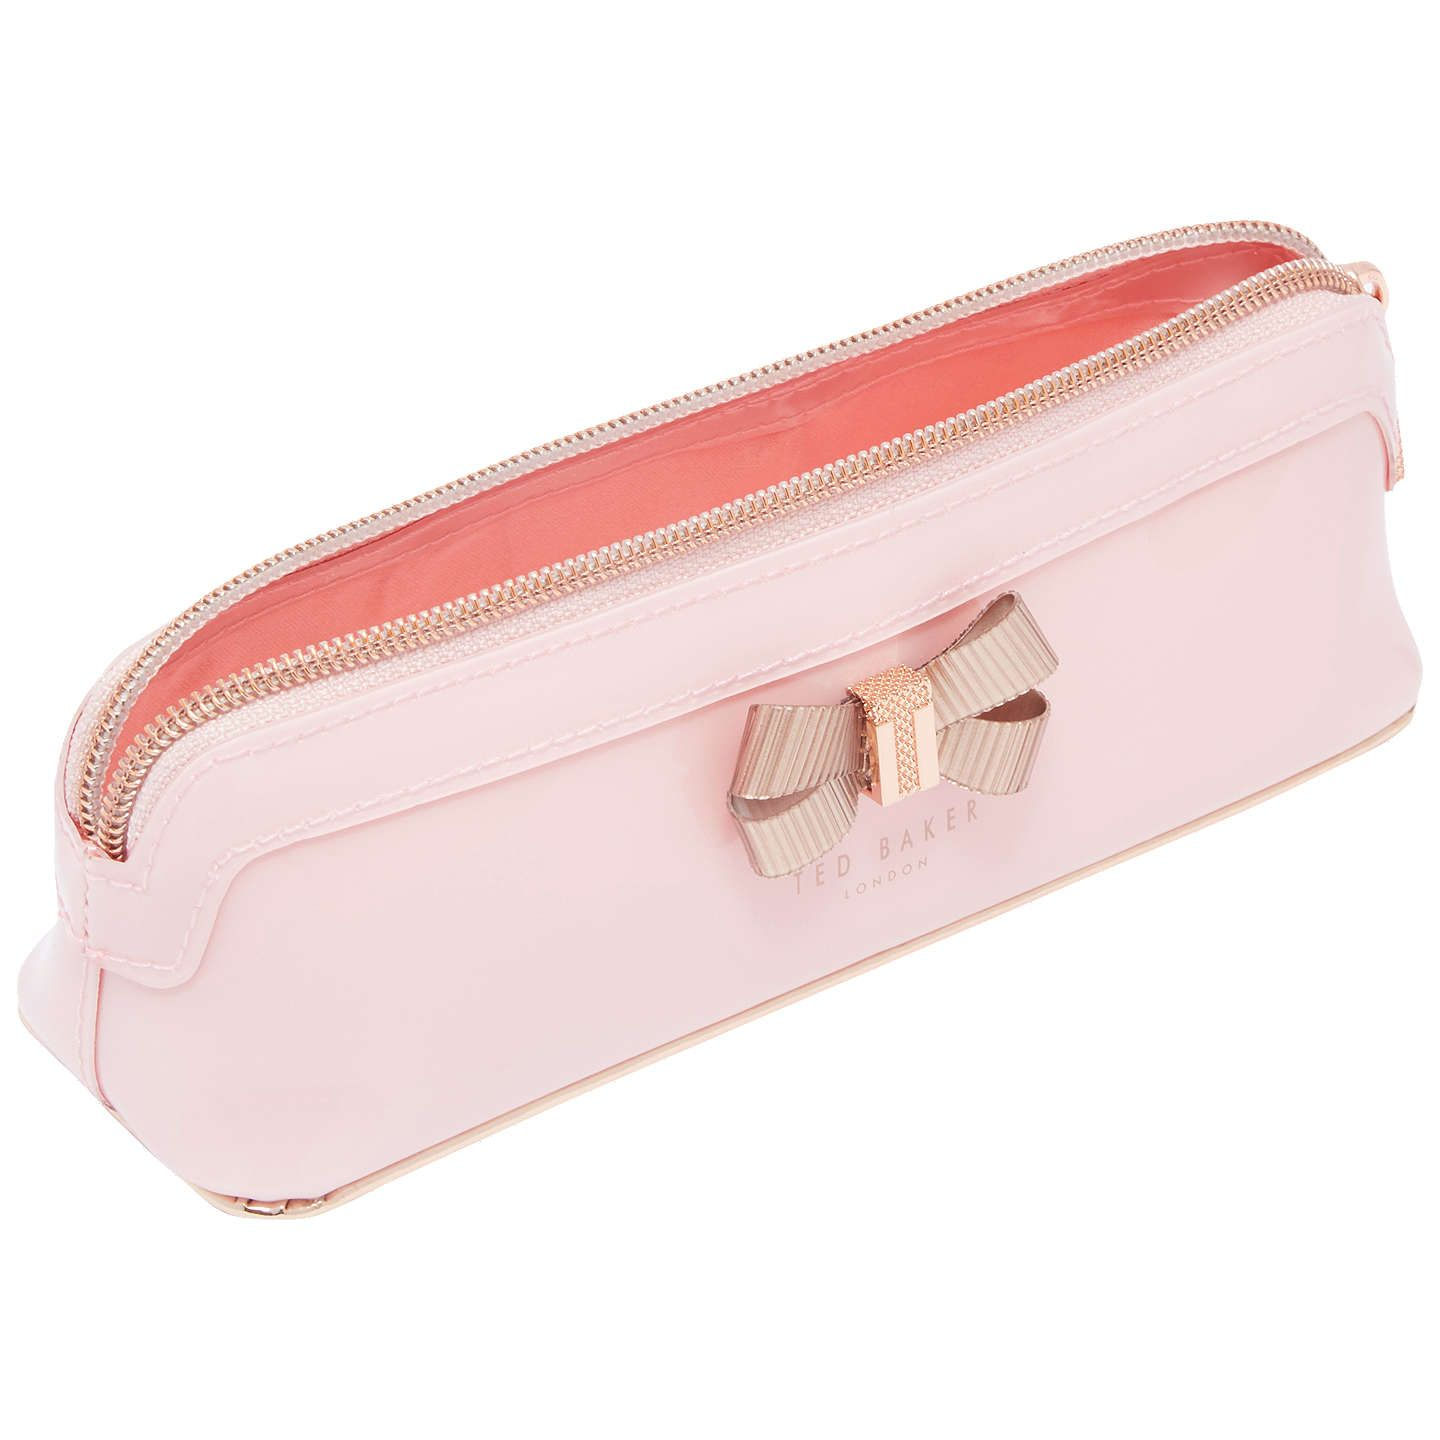 detailed pictures af6d8 529f3 Ted Baker Lora Bow Pencil Case, Pale Pink in 2019 | ♡cute ...